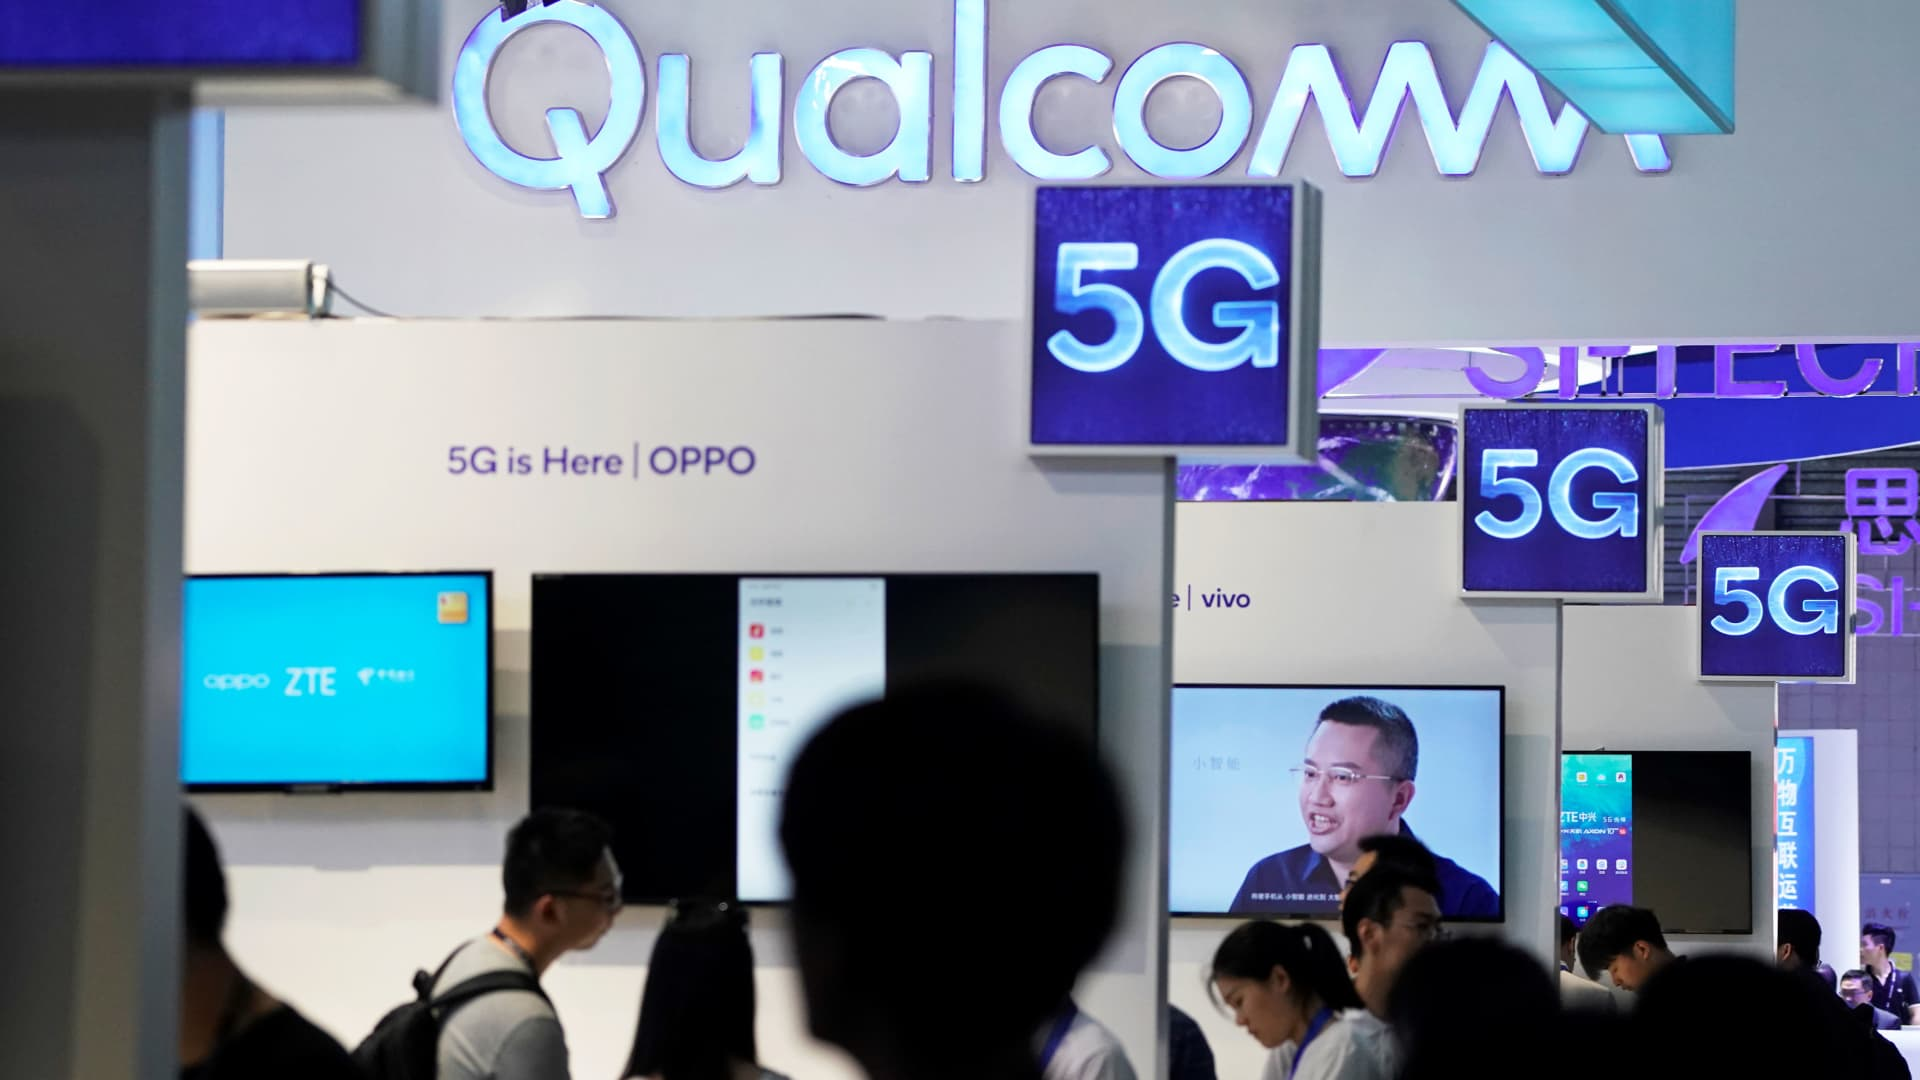 Signs of Qualcomm and 5G are pictured at Mobile World Congress (MWC) in Shanghai, China June 28, 2019.